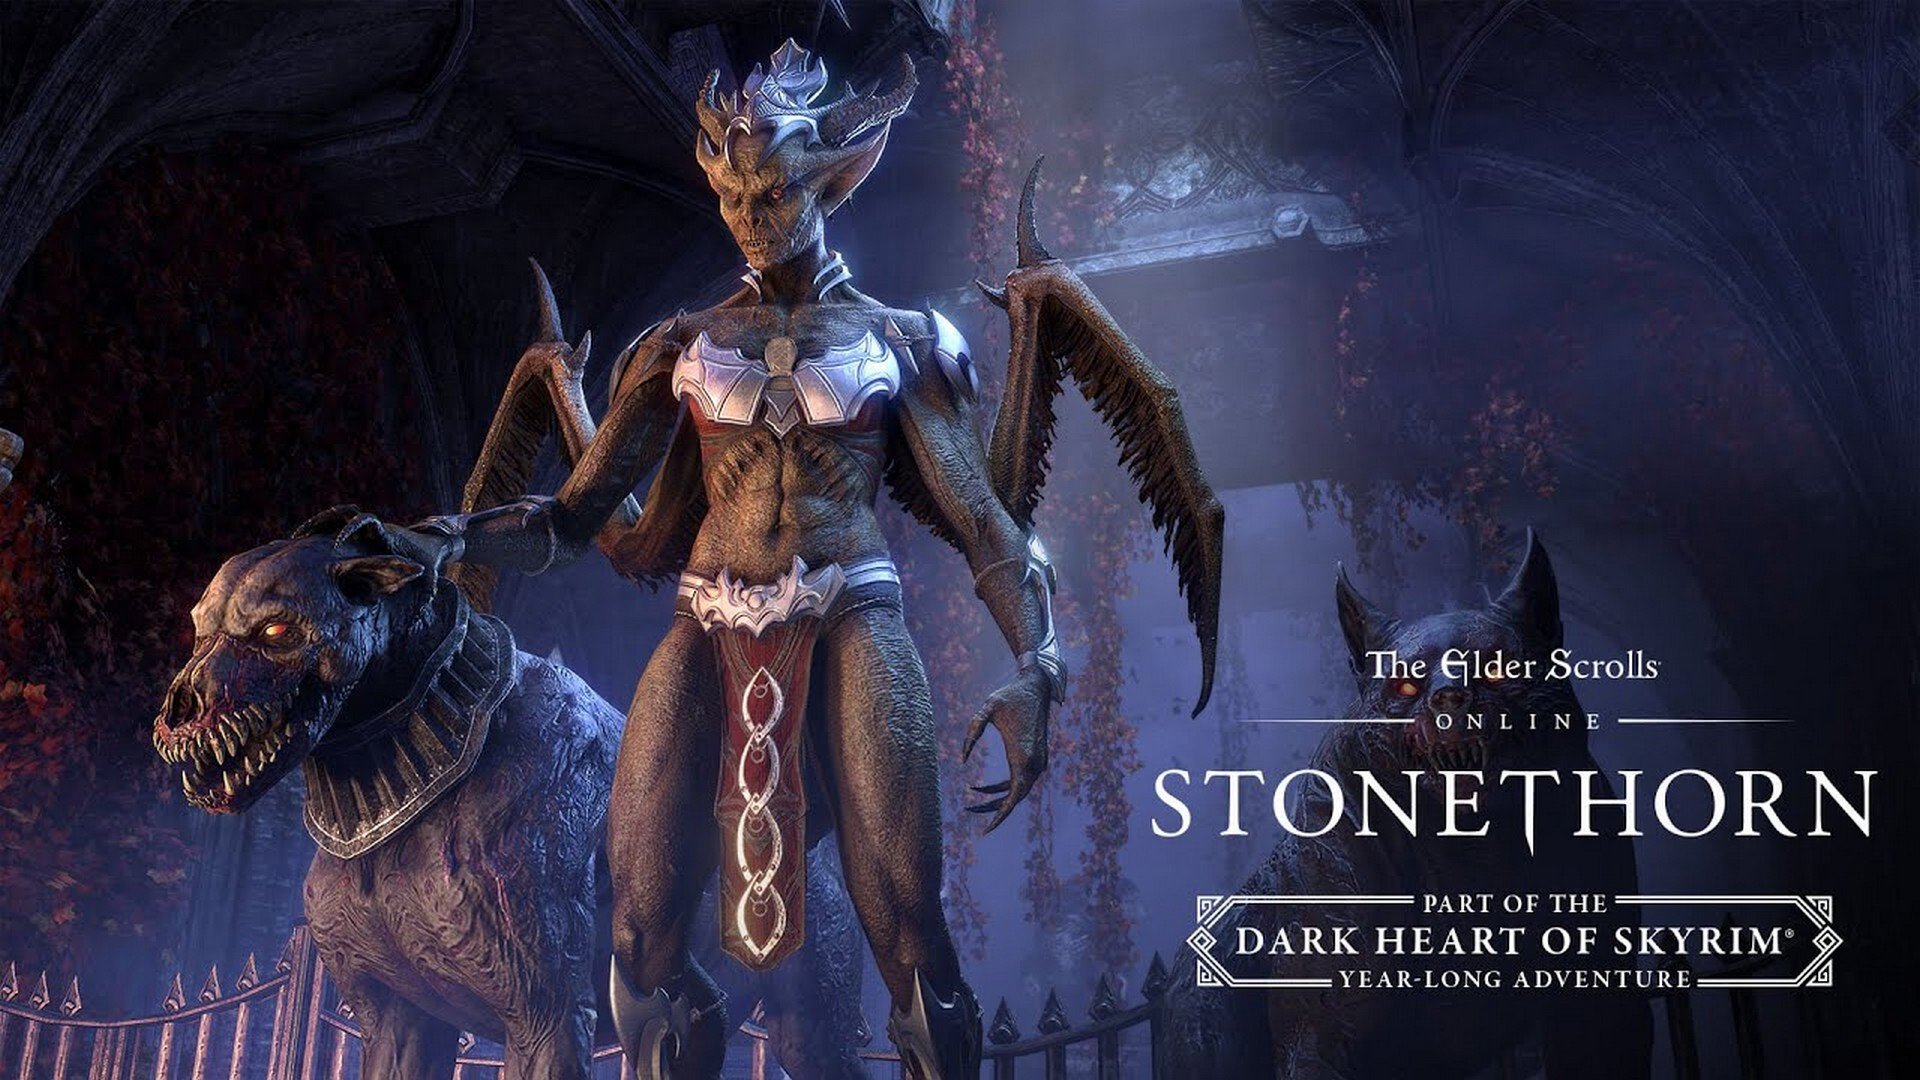 Eso S The Dark Heart Of Skyrim Continues With New Dungeons More On Pc Stadia And Mac Mkau Gaming